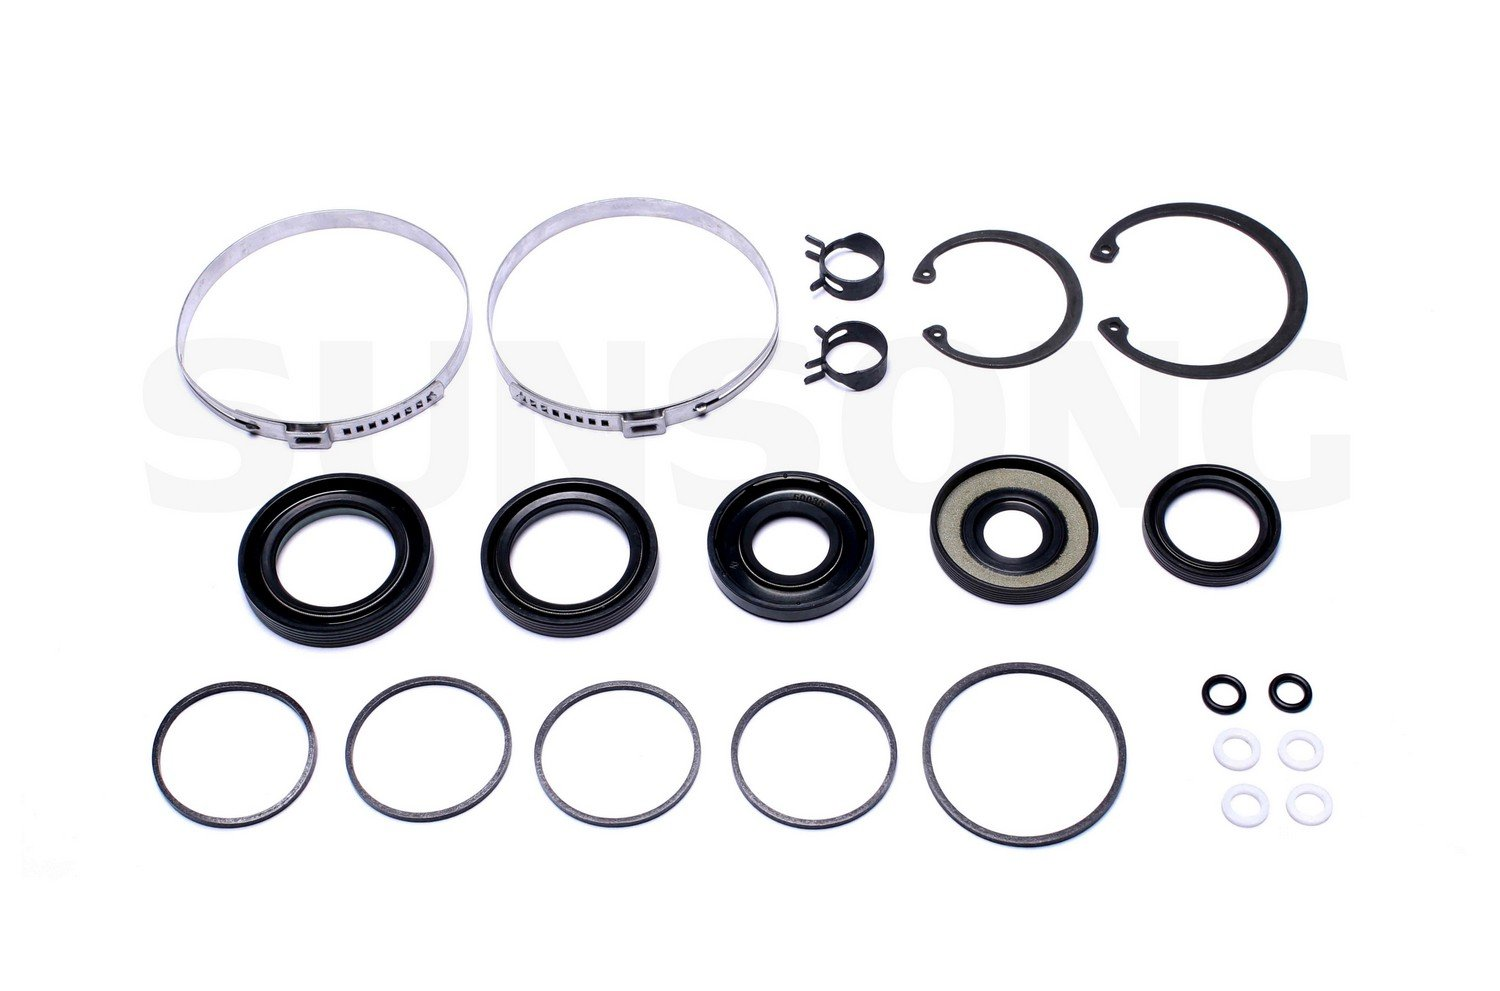 ACDelco 36-350960 Professional Steering Gear Pinion Shaft Seal Kit with Bushing Clamp and Seals